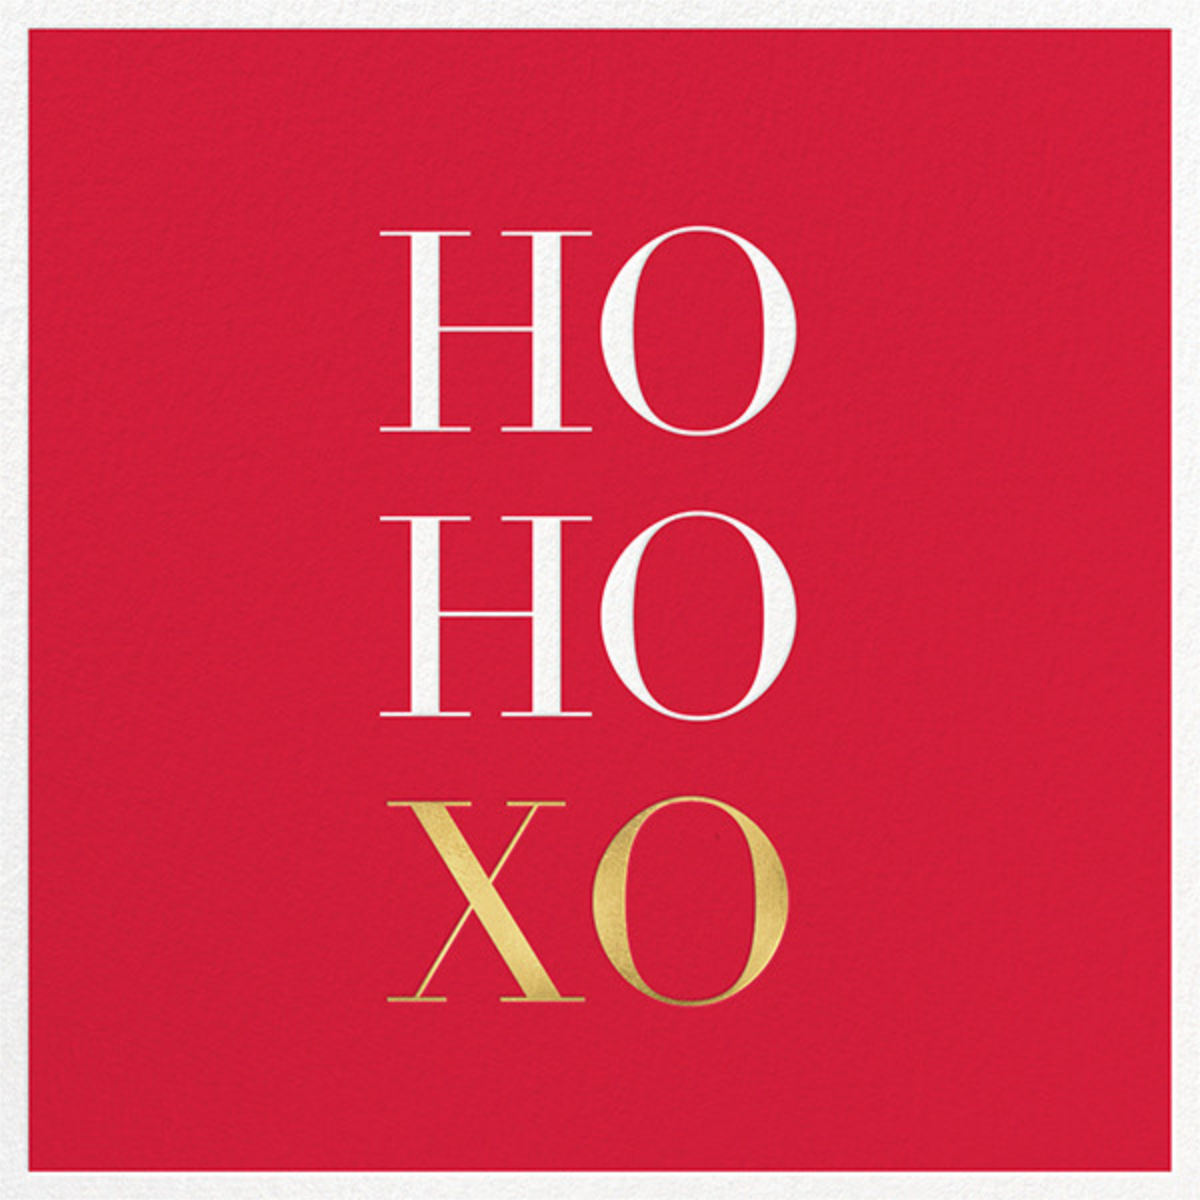 Ho Ho Xo - Sugar Paper - Christmas party